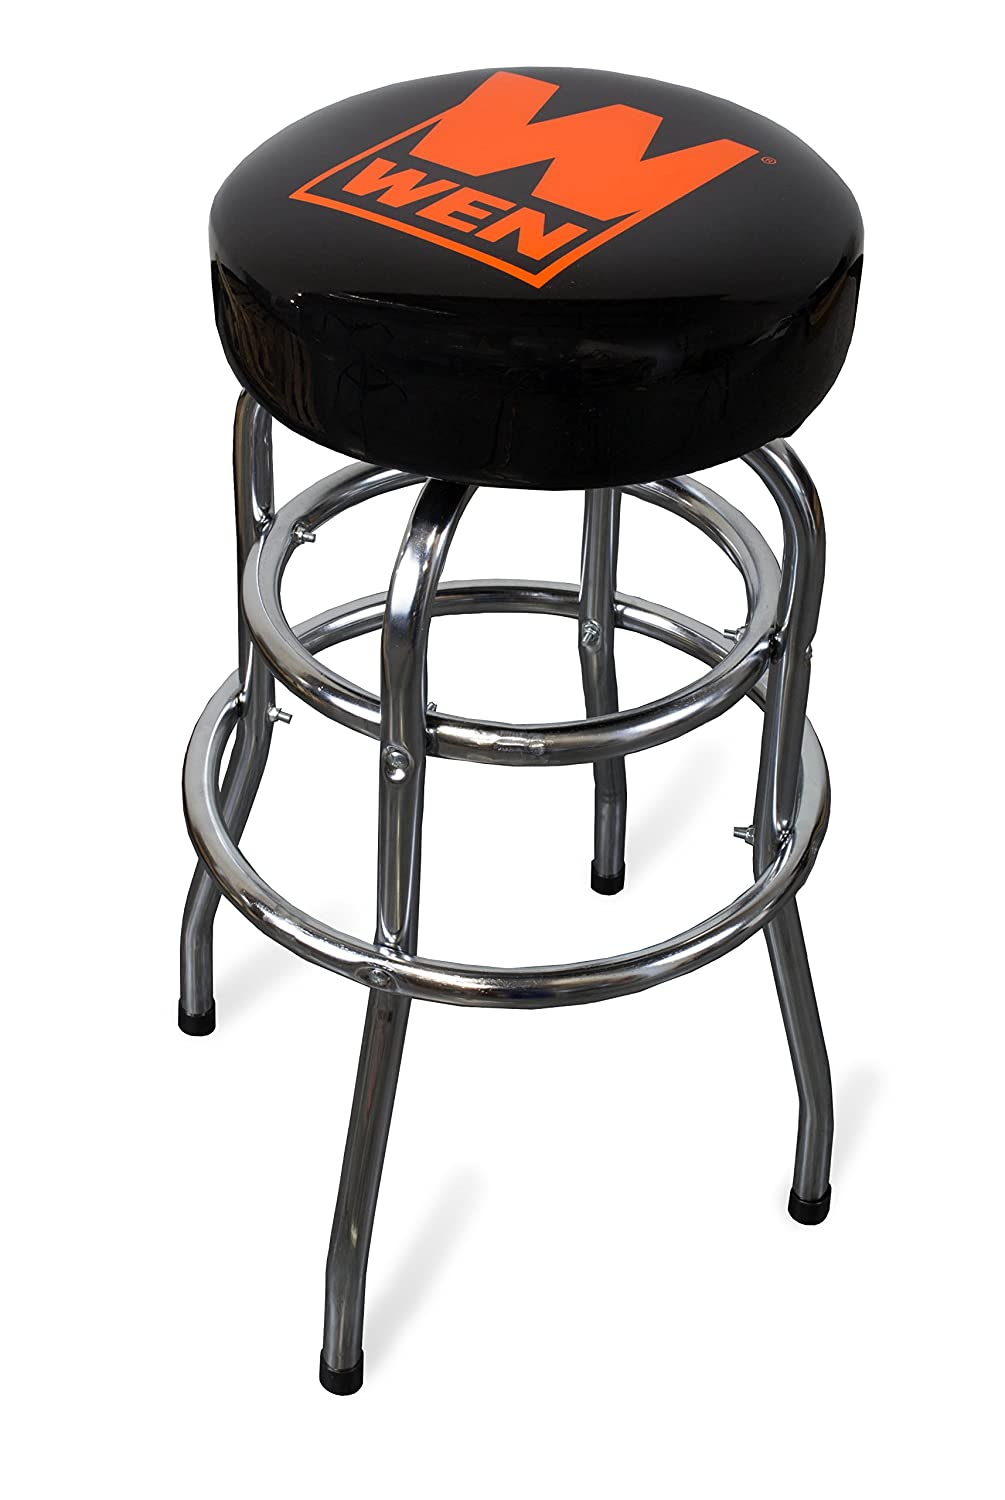 stools fortables stuff mancave furniture table cave inspiration s sofa garage plus automotive plans bar stool shedoutdoor accessories ideas finished beer man posh chairs zq bars end and terrific home basements